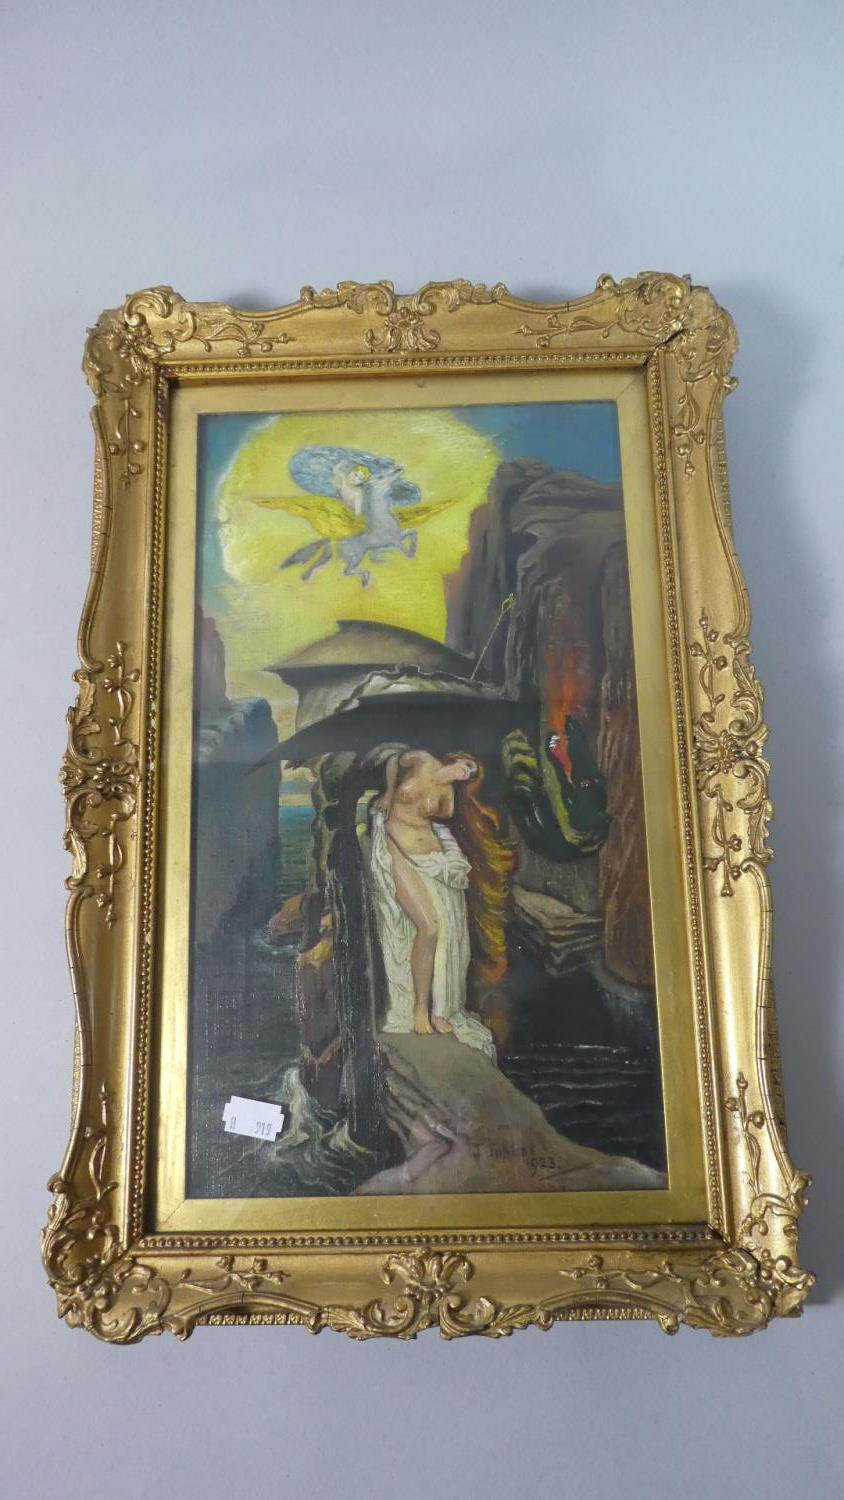 Lot 156 - A Gilt Framed Naive Oil Depicting Dragon with Nude Maiden Signed J Topliss 1923, 34cm High